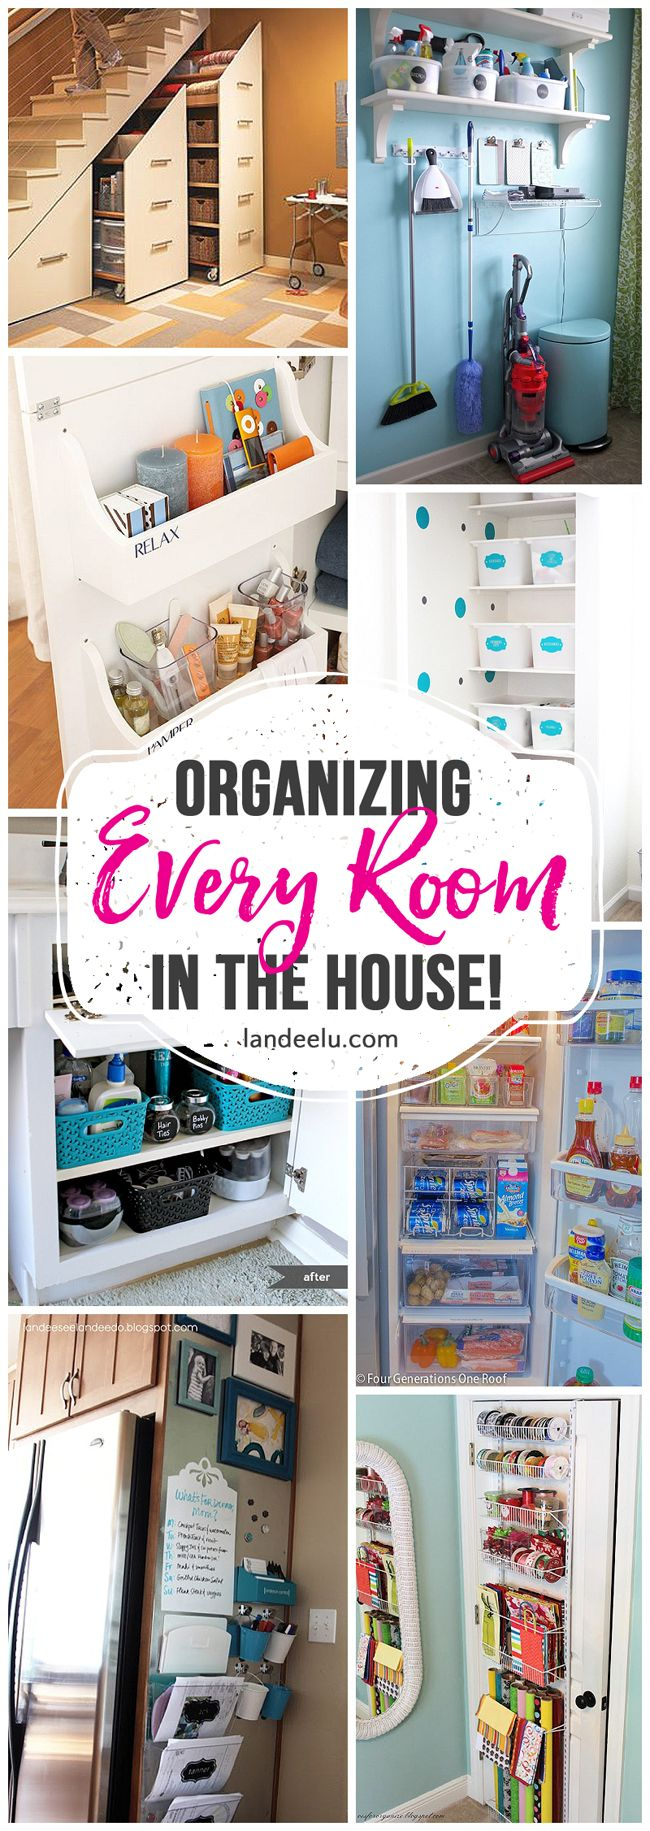 best organizing tips images on pinterest organisation